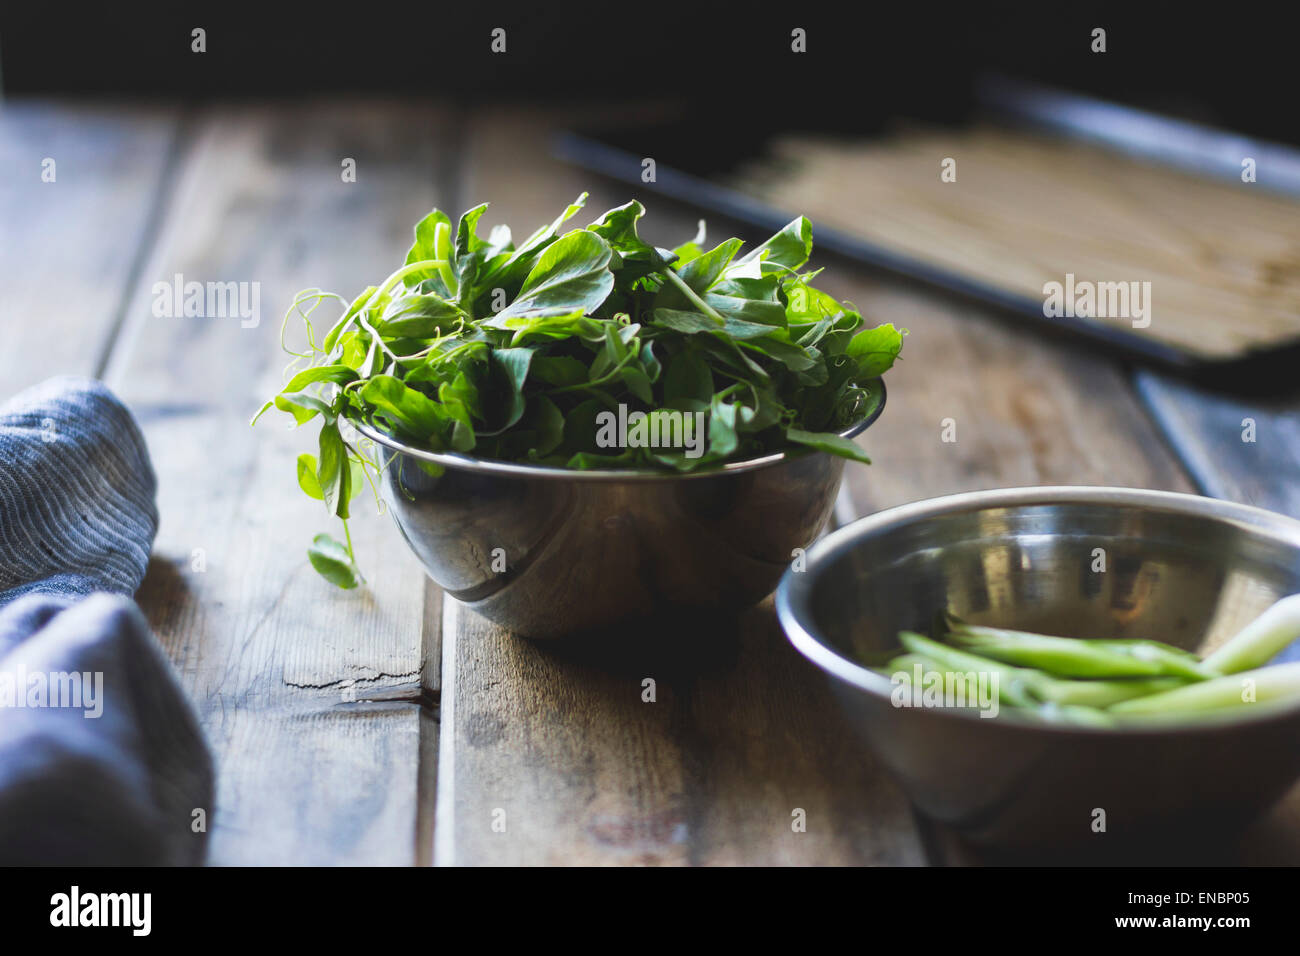 Pea shoots in a metallic bowl - Stock Image